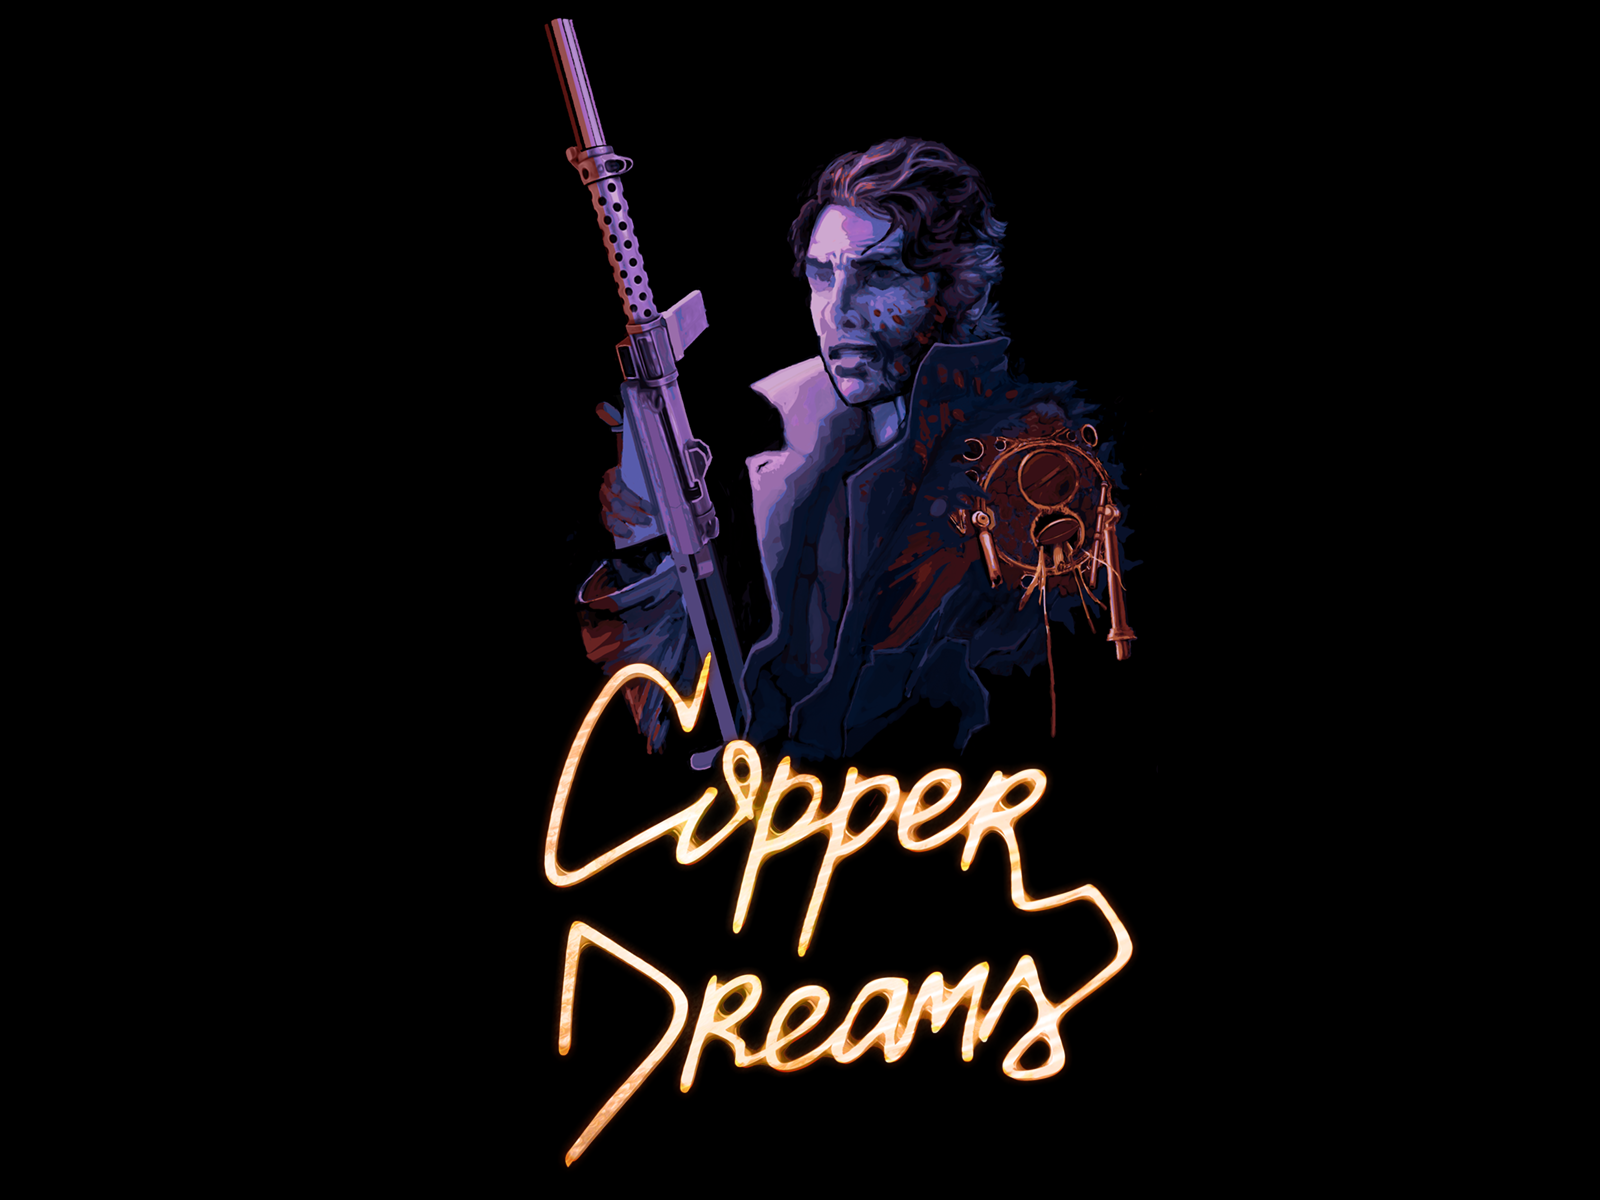 Media_CopperDreamsLogo2